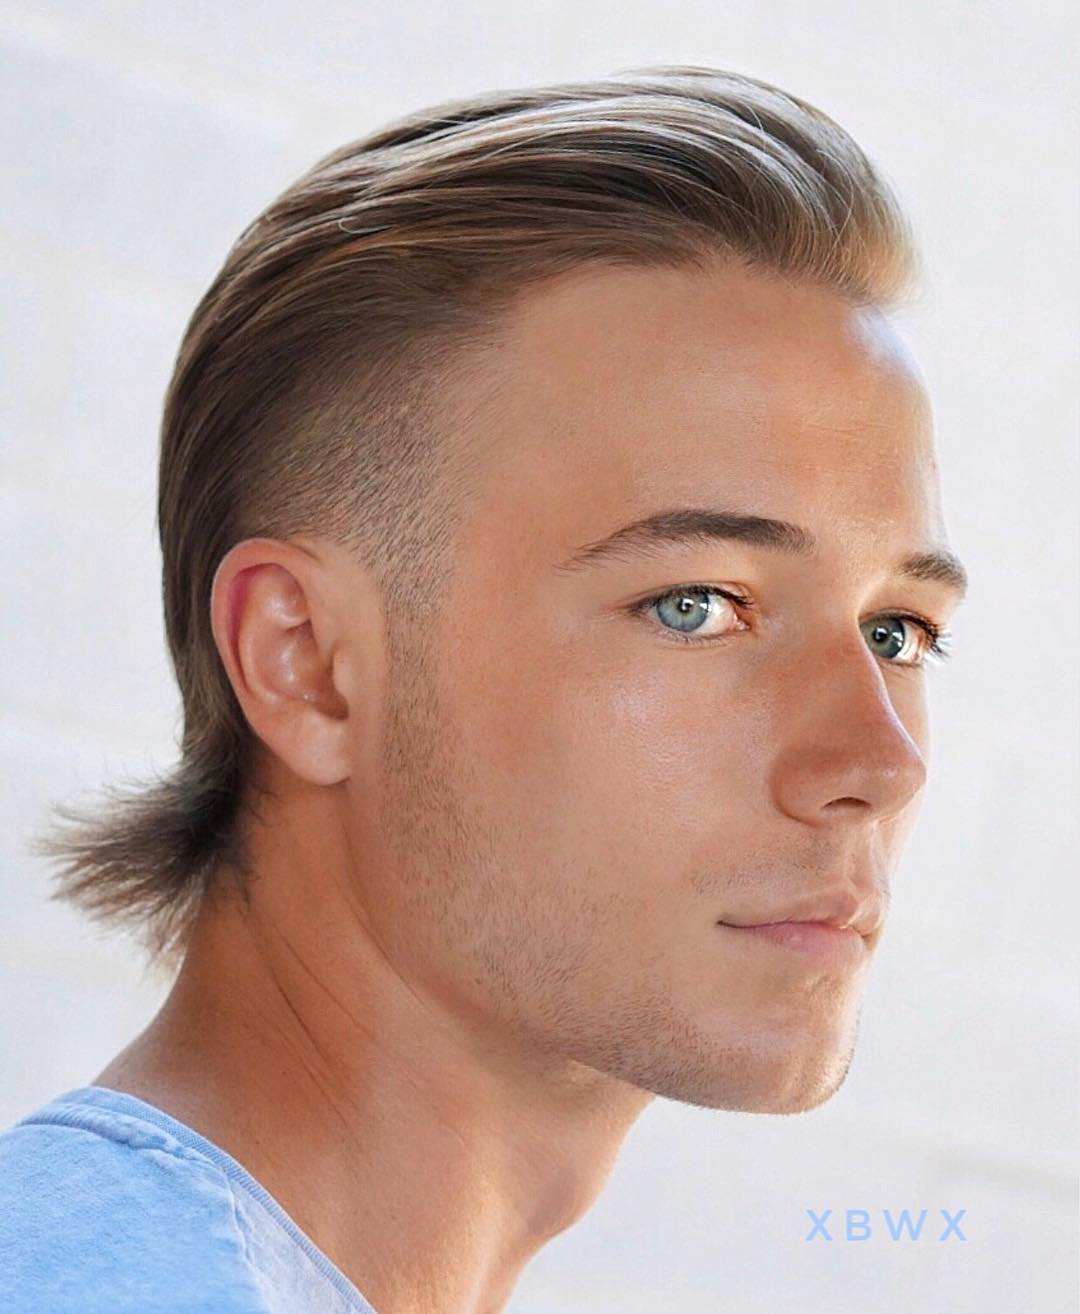 What are the types of haircuts